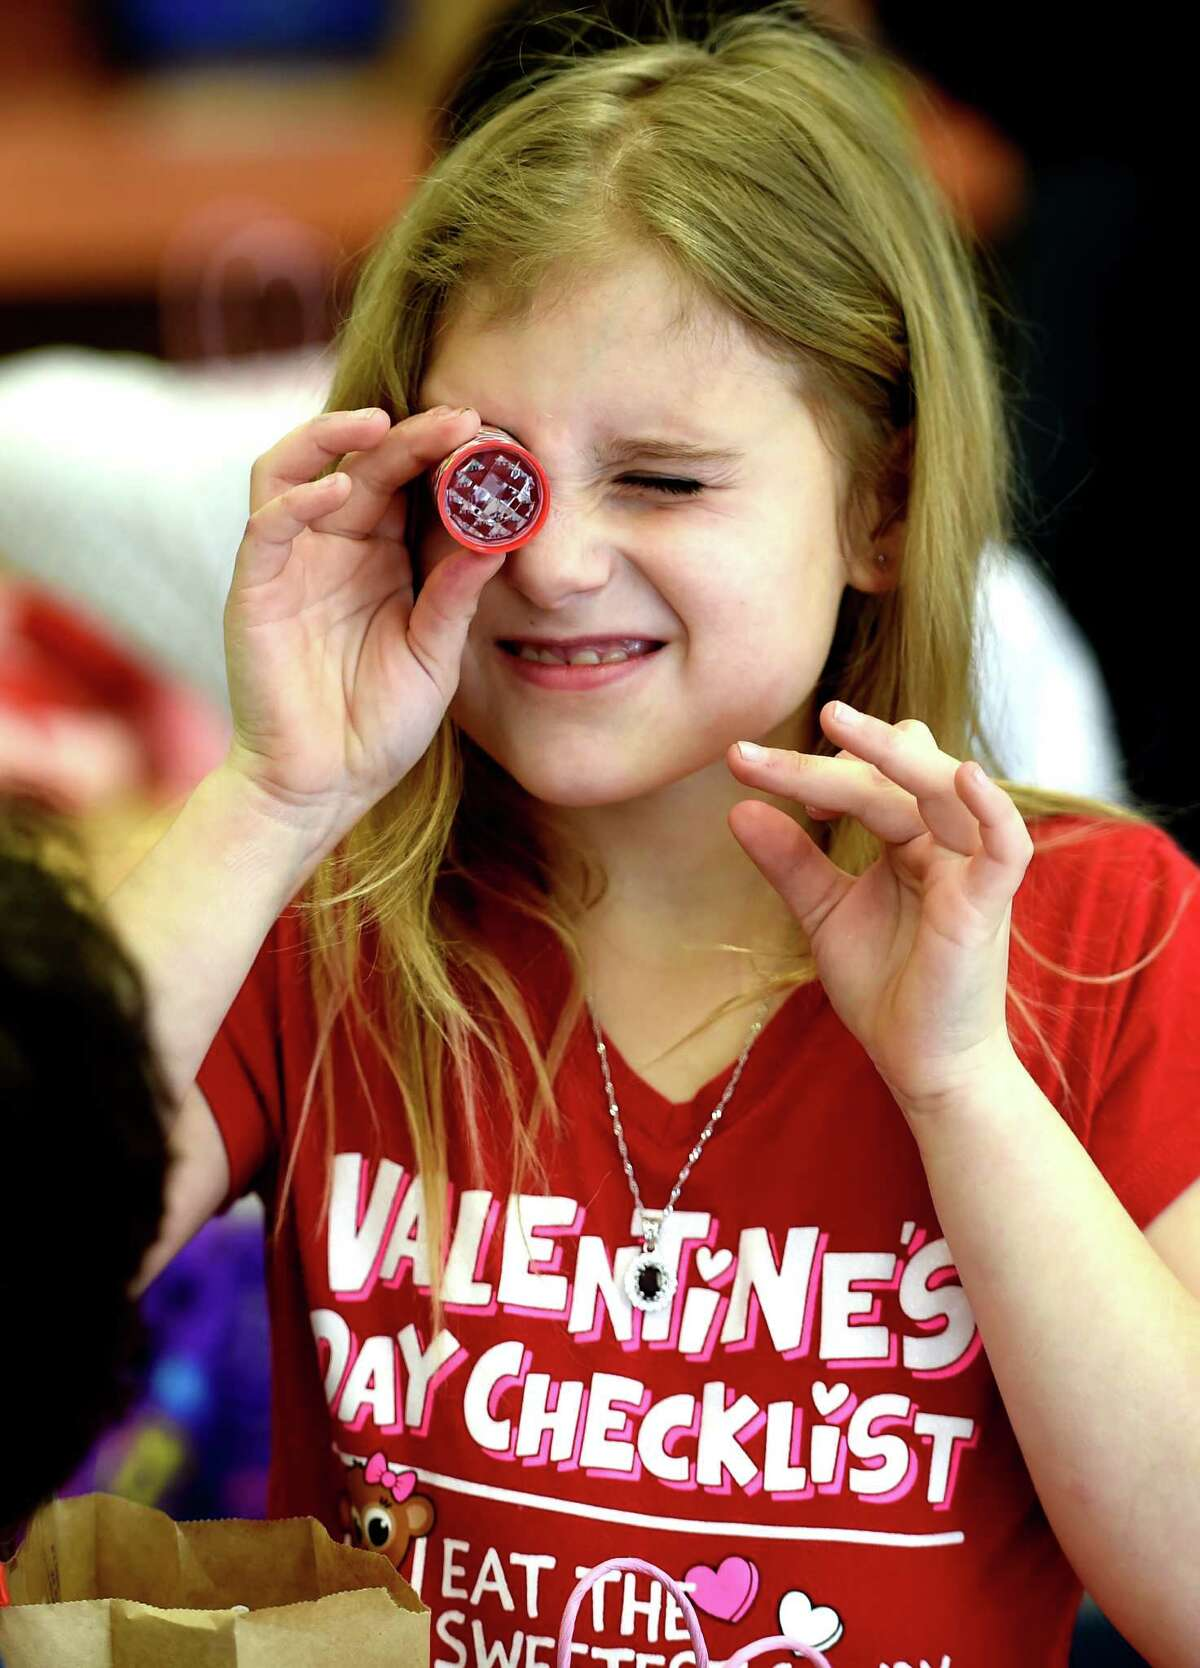 Carmella Banta looks through a calydiscope which was given to her as a Valentine's Day gift Friday afternoon Feb. 13, 2015 at the Elmer Elementary School in Schenectady, N.Y. The occasion was Mrs. Jennifer Rodecker's class Valentine's Day celebration. (Skip Dickstein/Times Union)